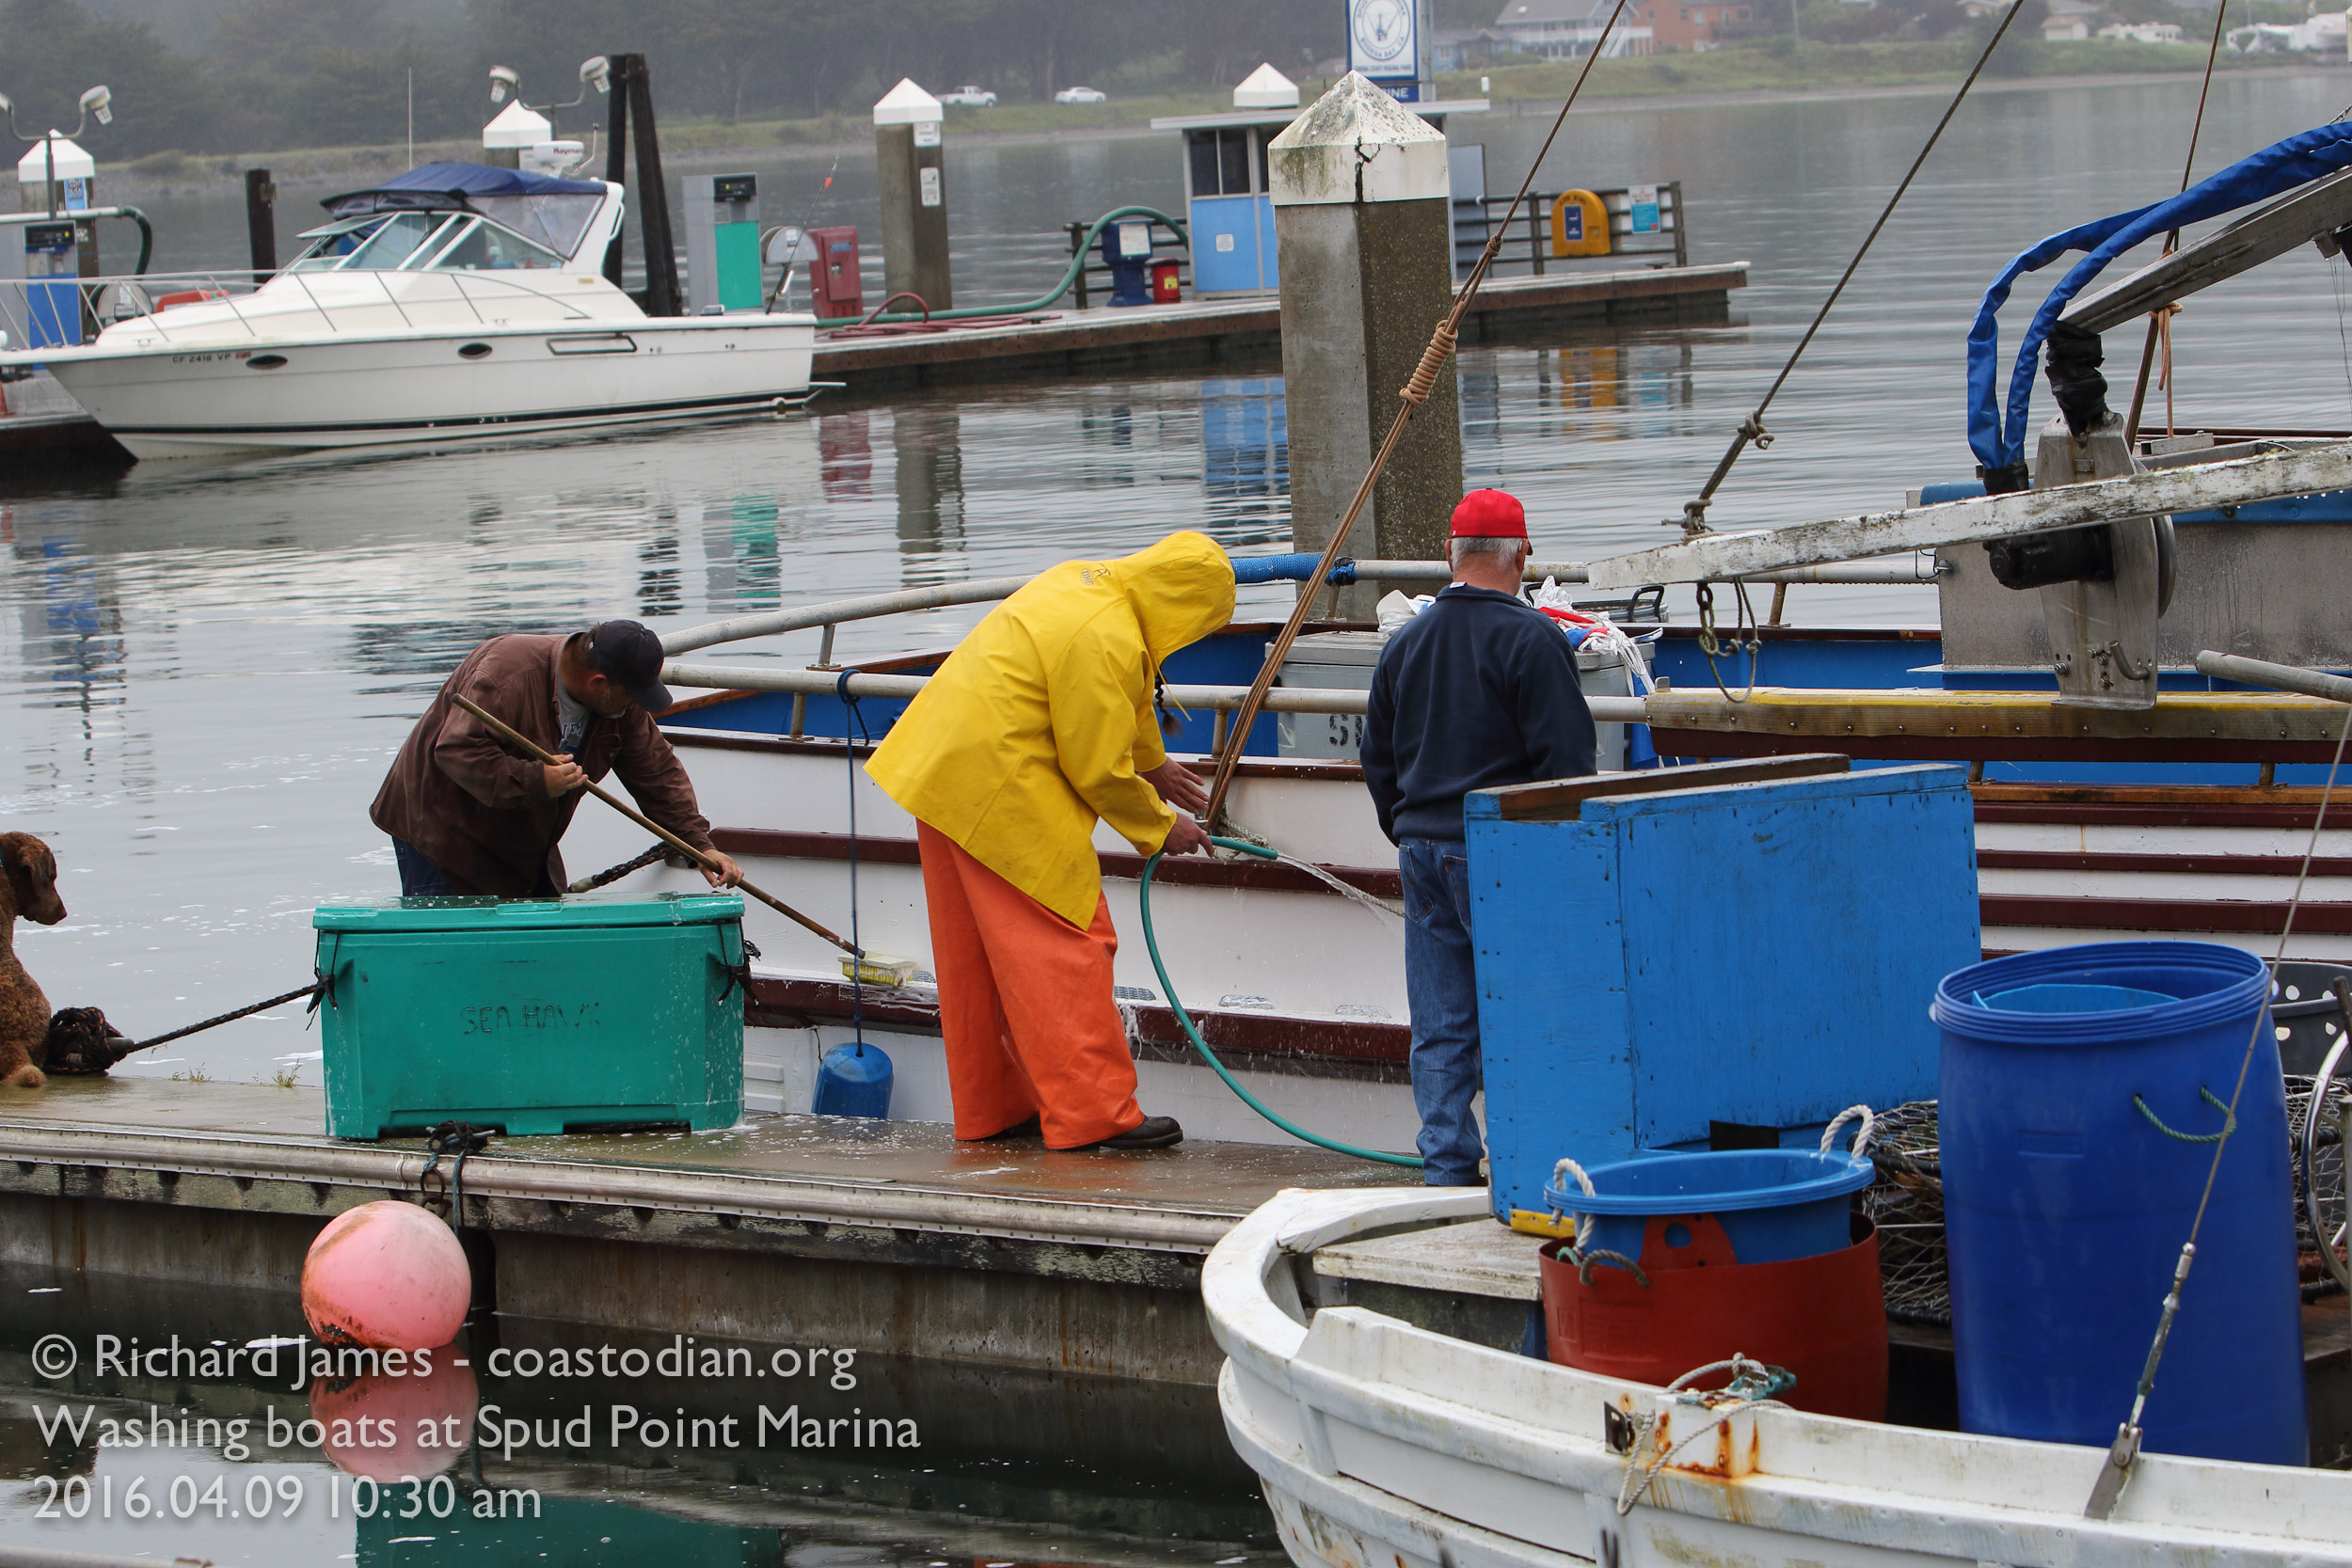 Washing down the boat at Spud Point Marina, Bodega Bay ©Richard James - coastodian.org